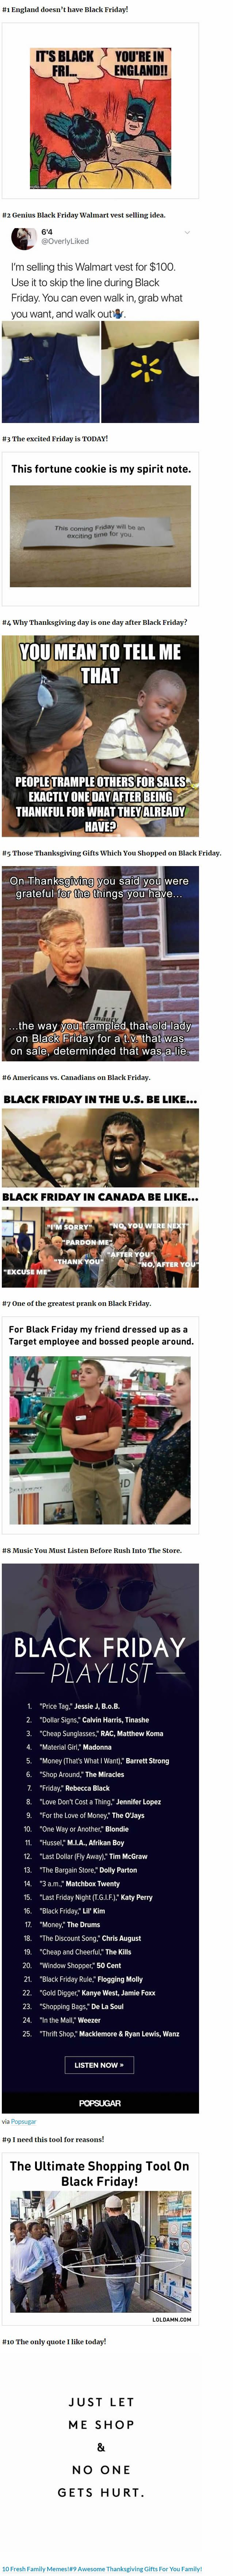 Ummmm.... we do have Black Friday in the UK. It might not be as ridiculously over the top as in America, but we have it.